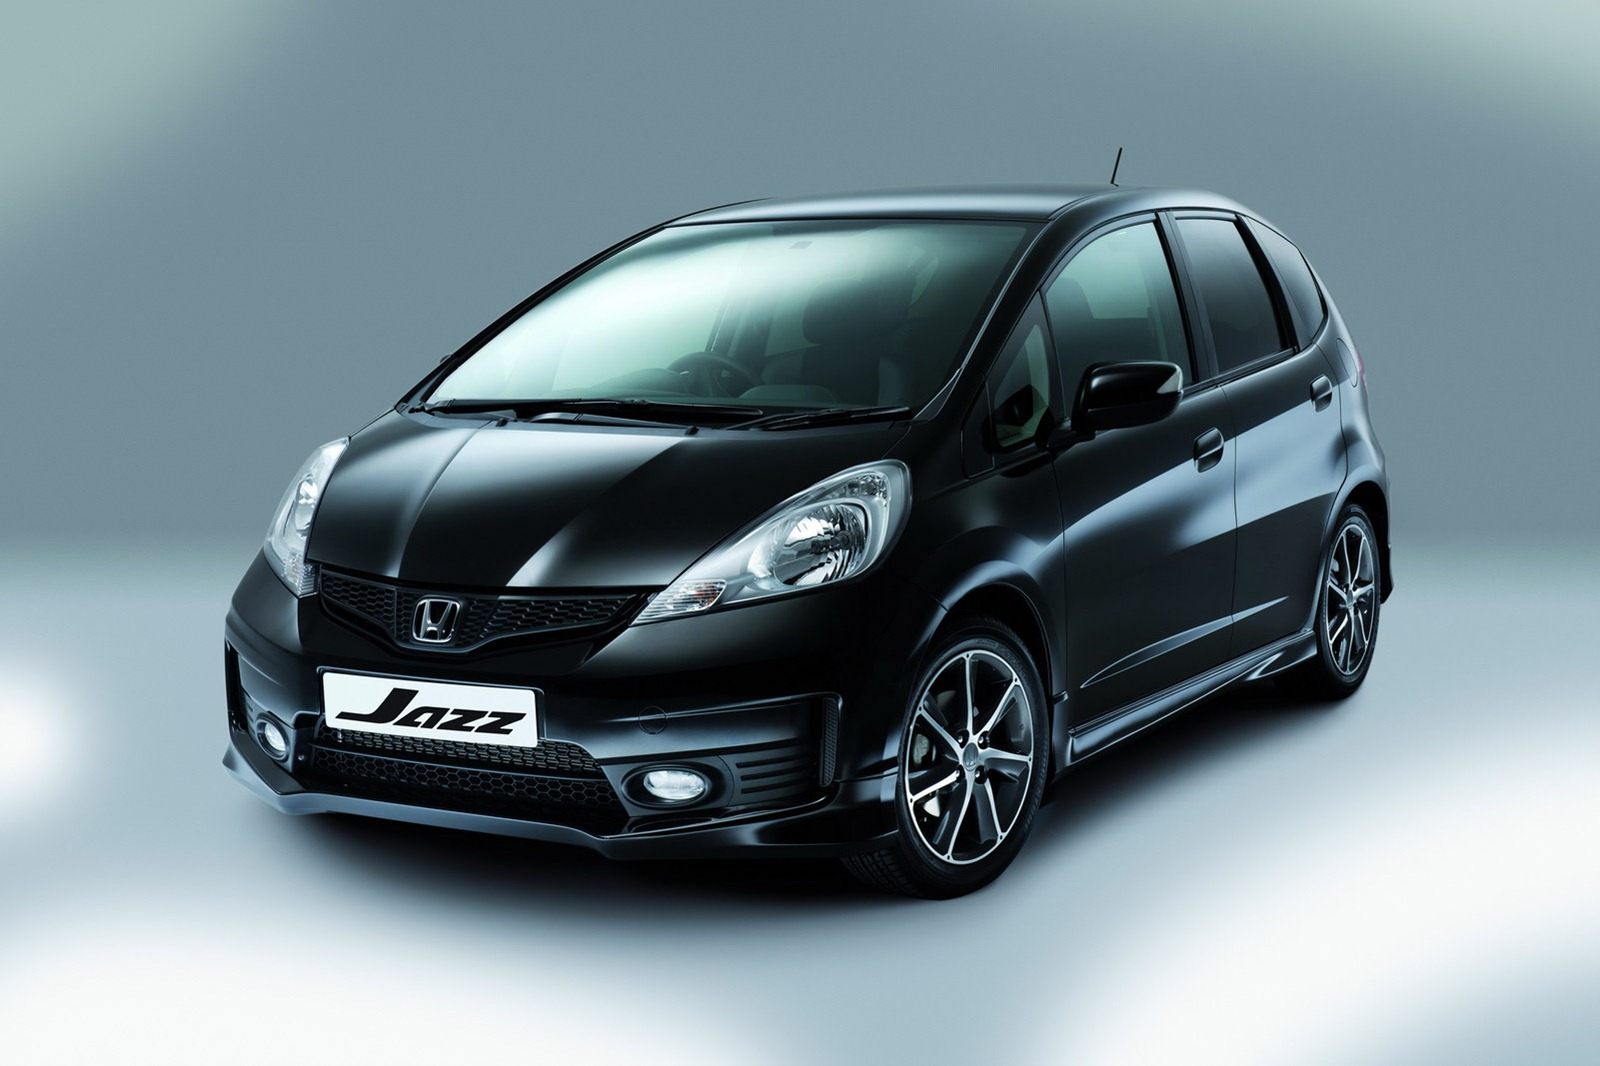 Best Car Wallpaper: Honda Jazz Special Edition Black